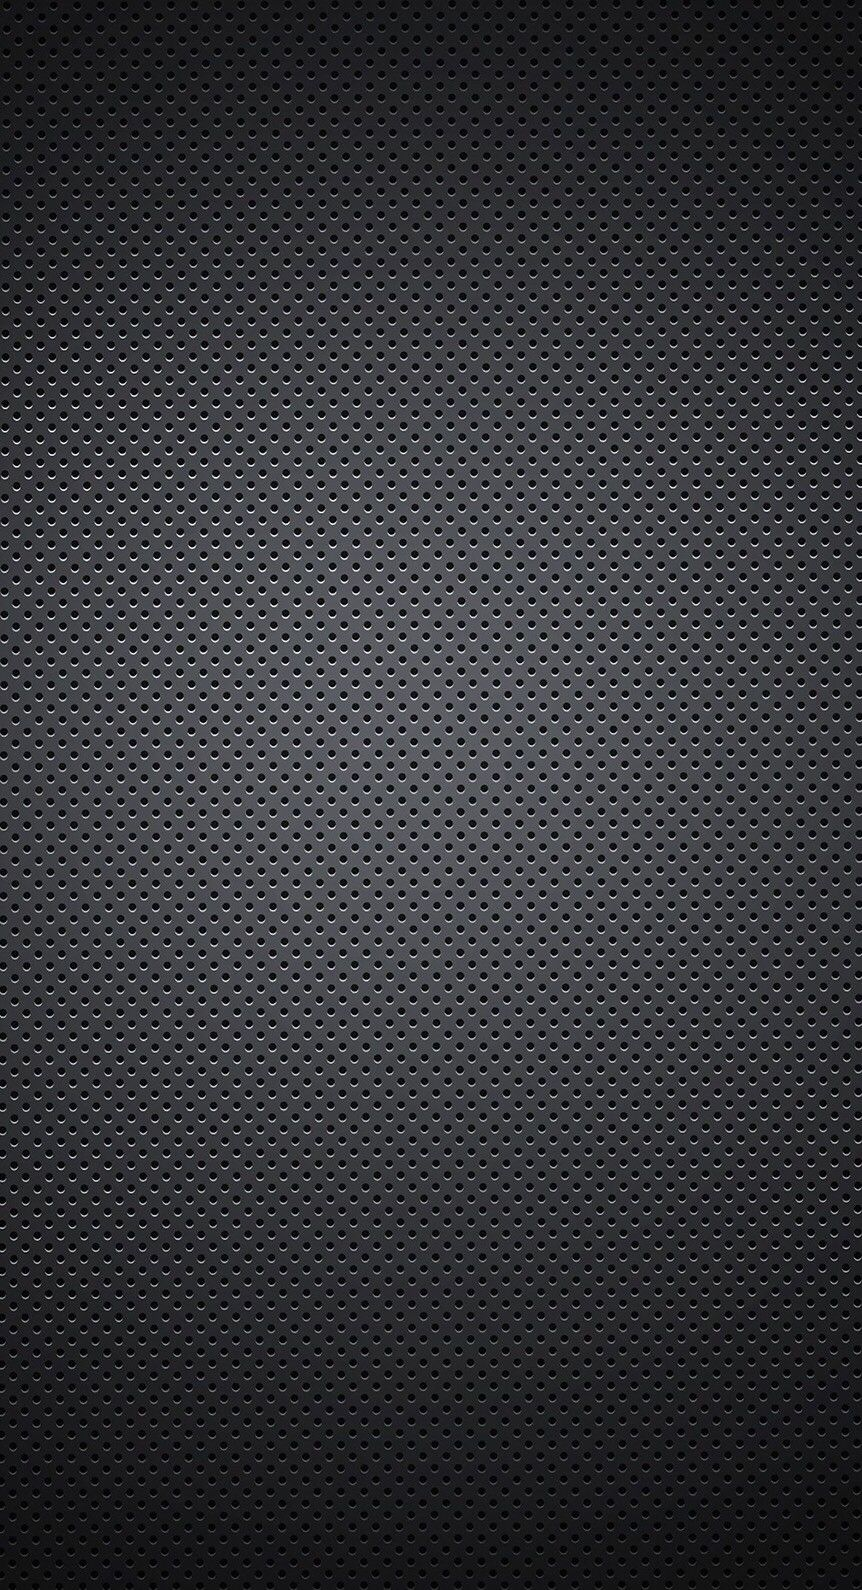 Must see Wallpaper Home Screen Grey - 322d50502cf7a01577632732ffe6b5e2  You Should Have_218170.jpg